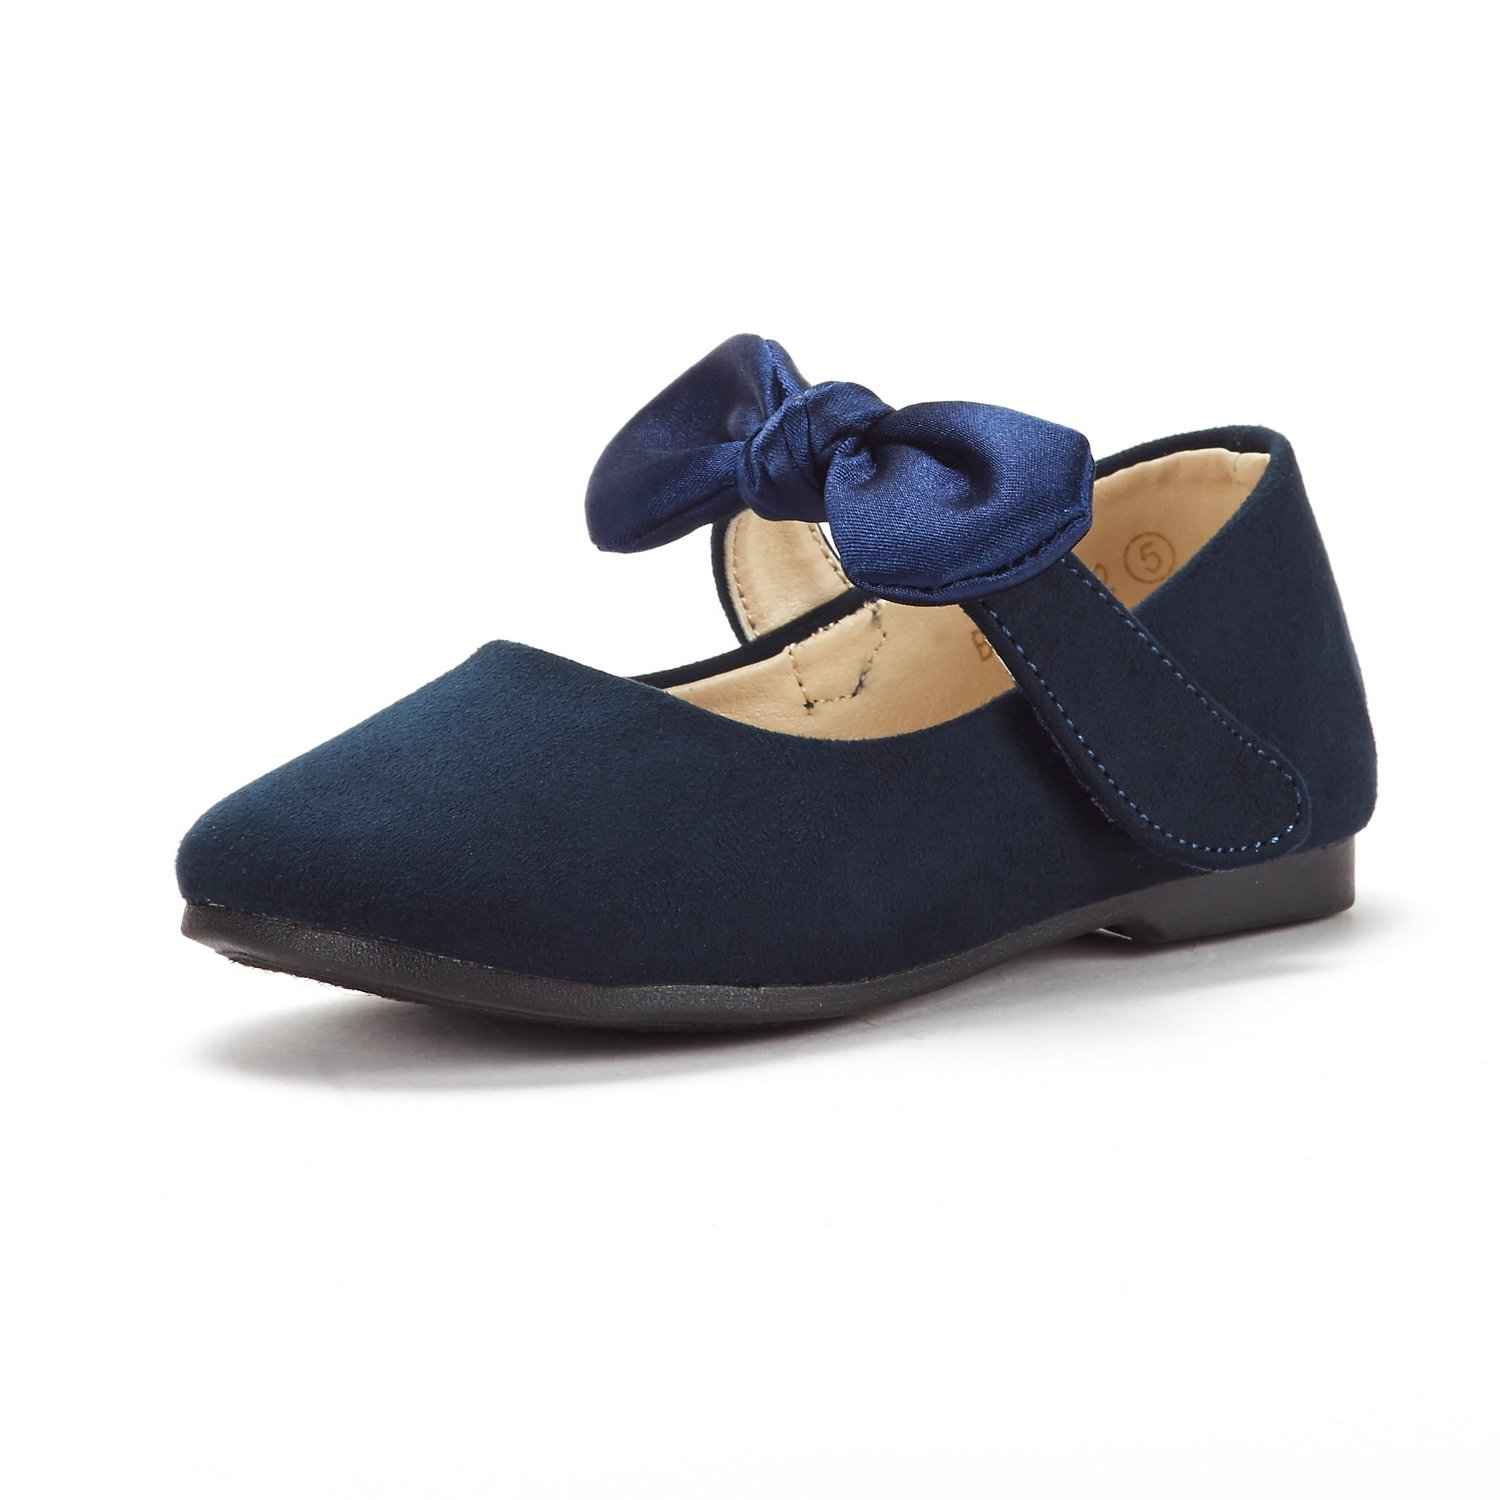 DREAM PAIRS Toddler Belle_02 Navy Girl's Mary Jane Ballerina Flat Shoes Size 7 M US Toddler